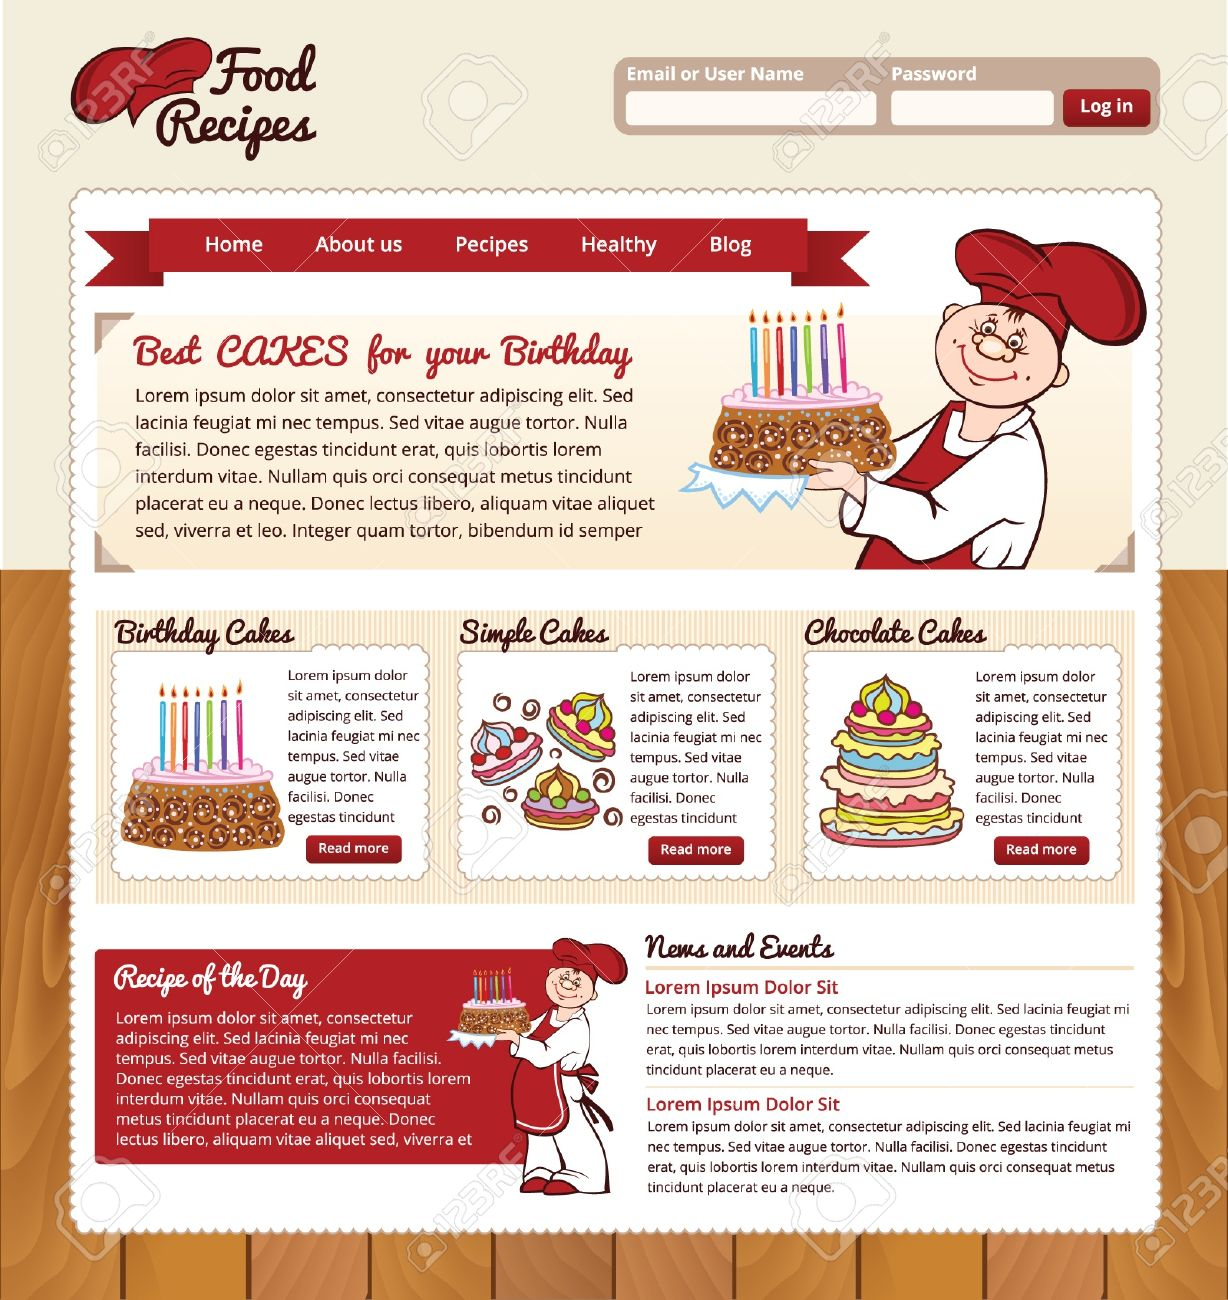 Food recipes template for website royalty free cliparts vectors food recipes template for website stock vector 19156752 forumfinder Images